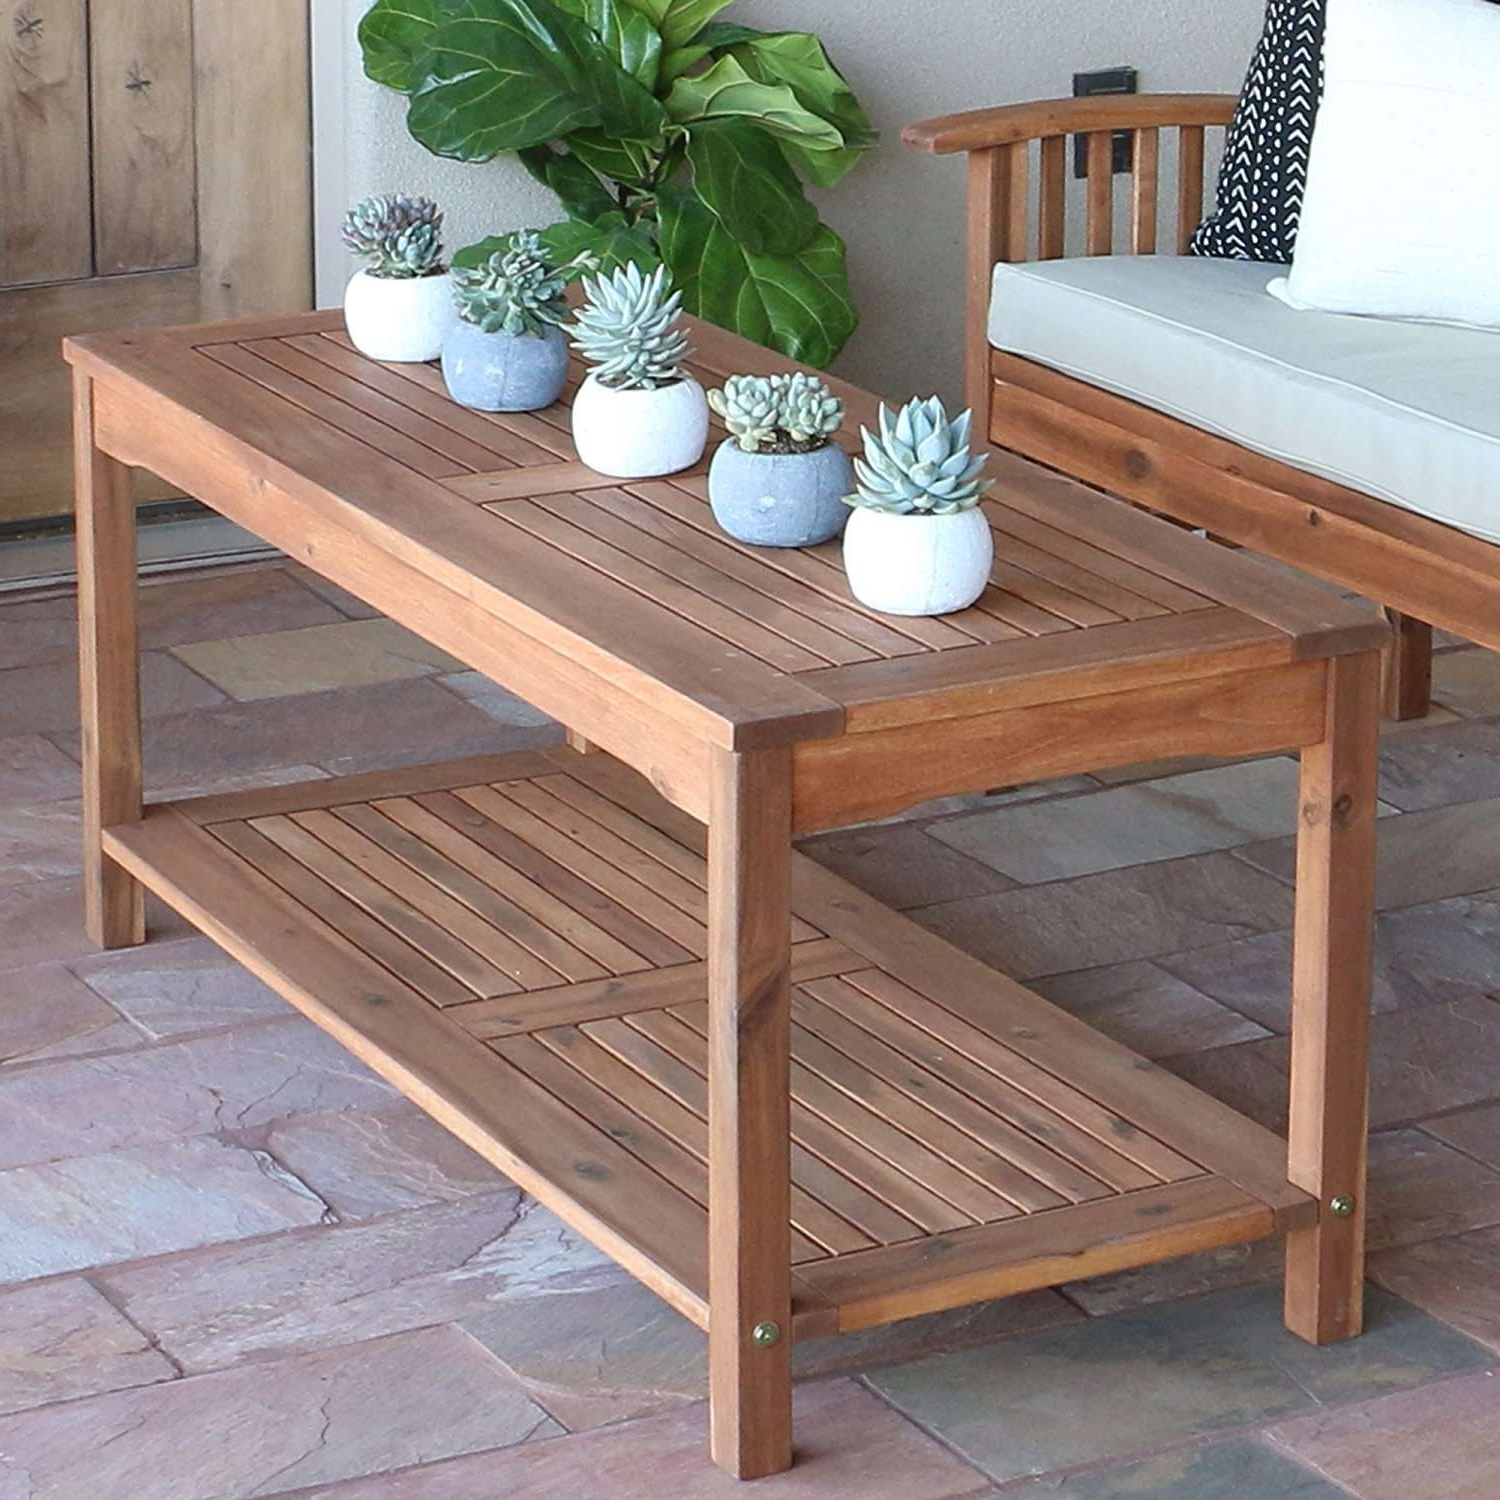 9 Crate And Barrel Concrete Coffee Table Gallery | Coffee Tables Ideas With Regard To Parsons Concrete Top & Dark Steel Base 48x16 Console Tables (View 10 of 20)